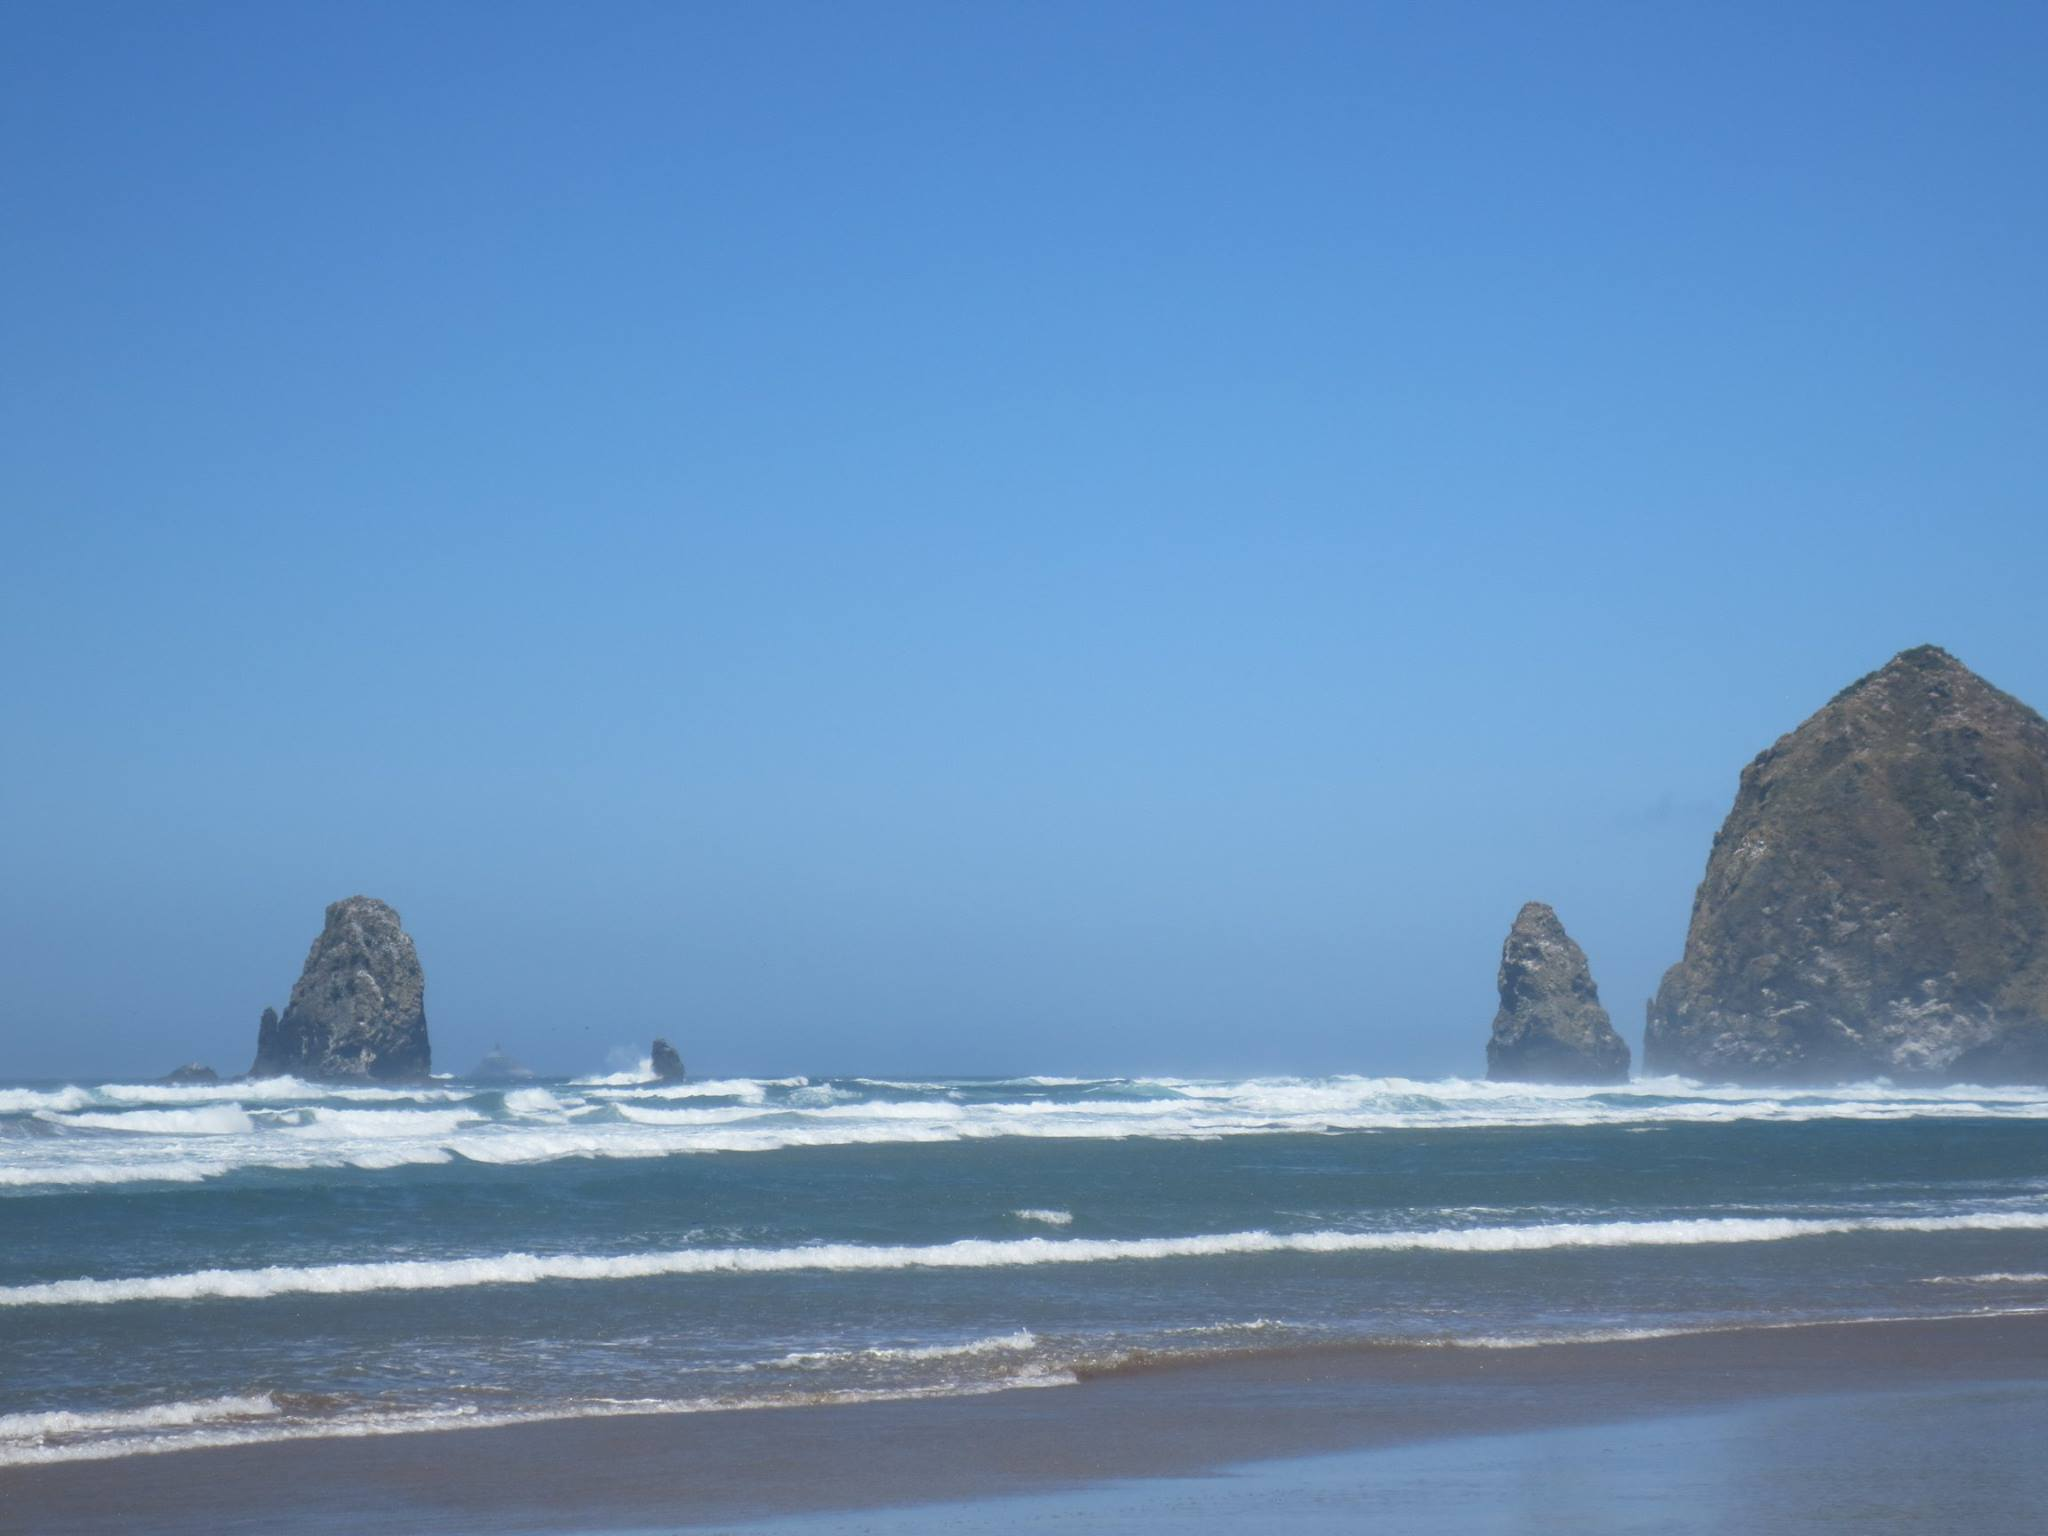 photo of the shoreline at Cannon Beach, featuring Haystack Rock